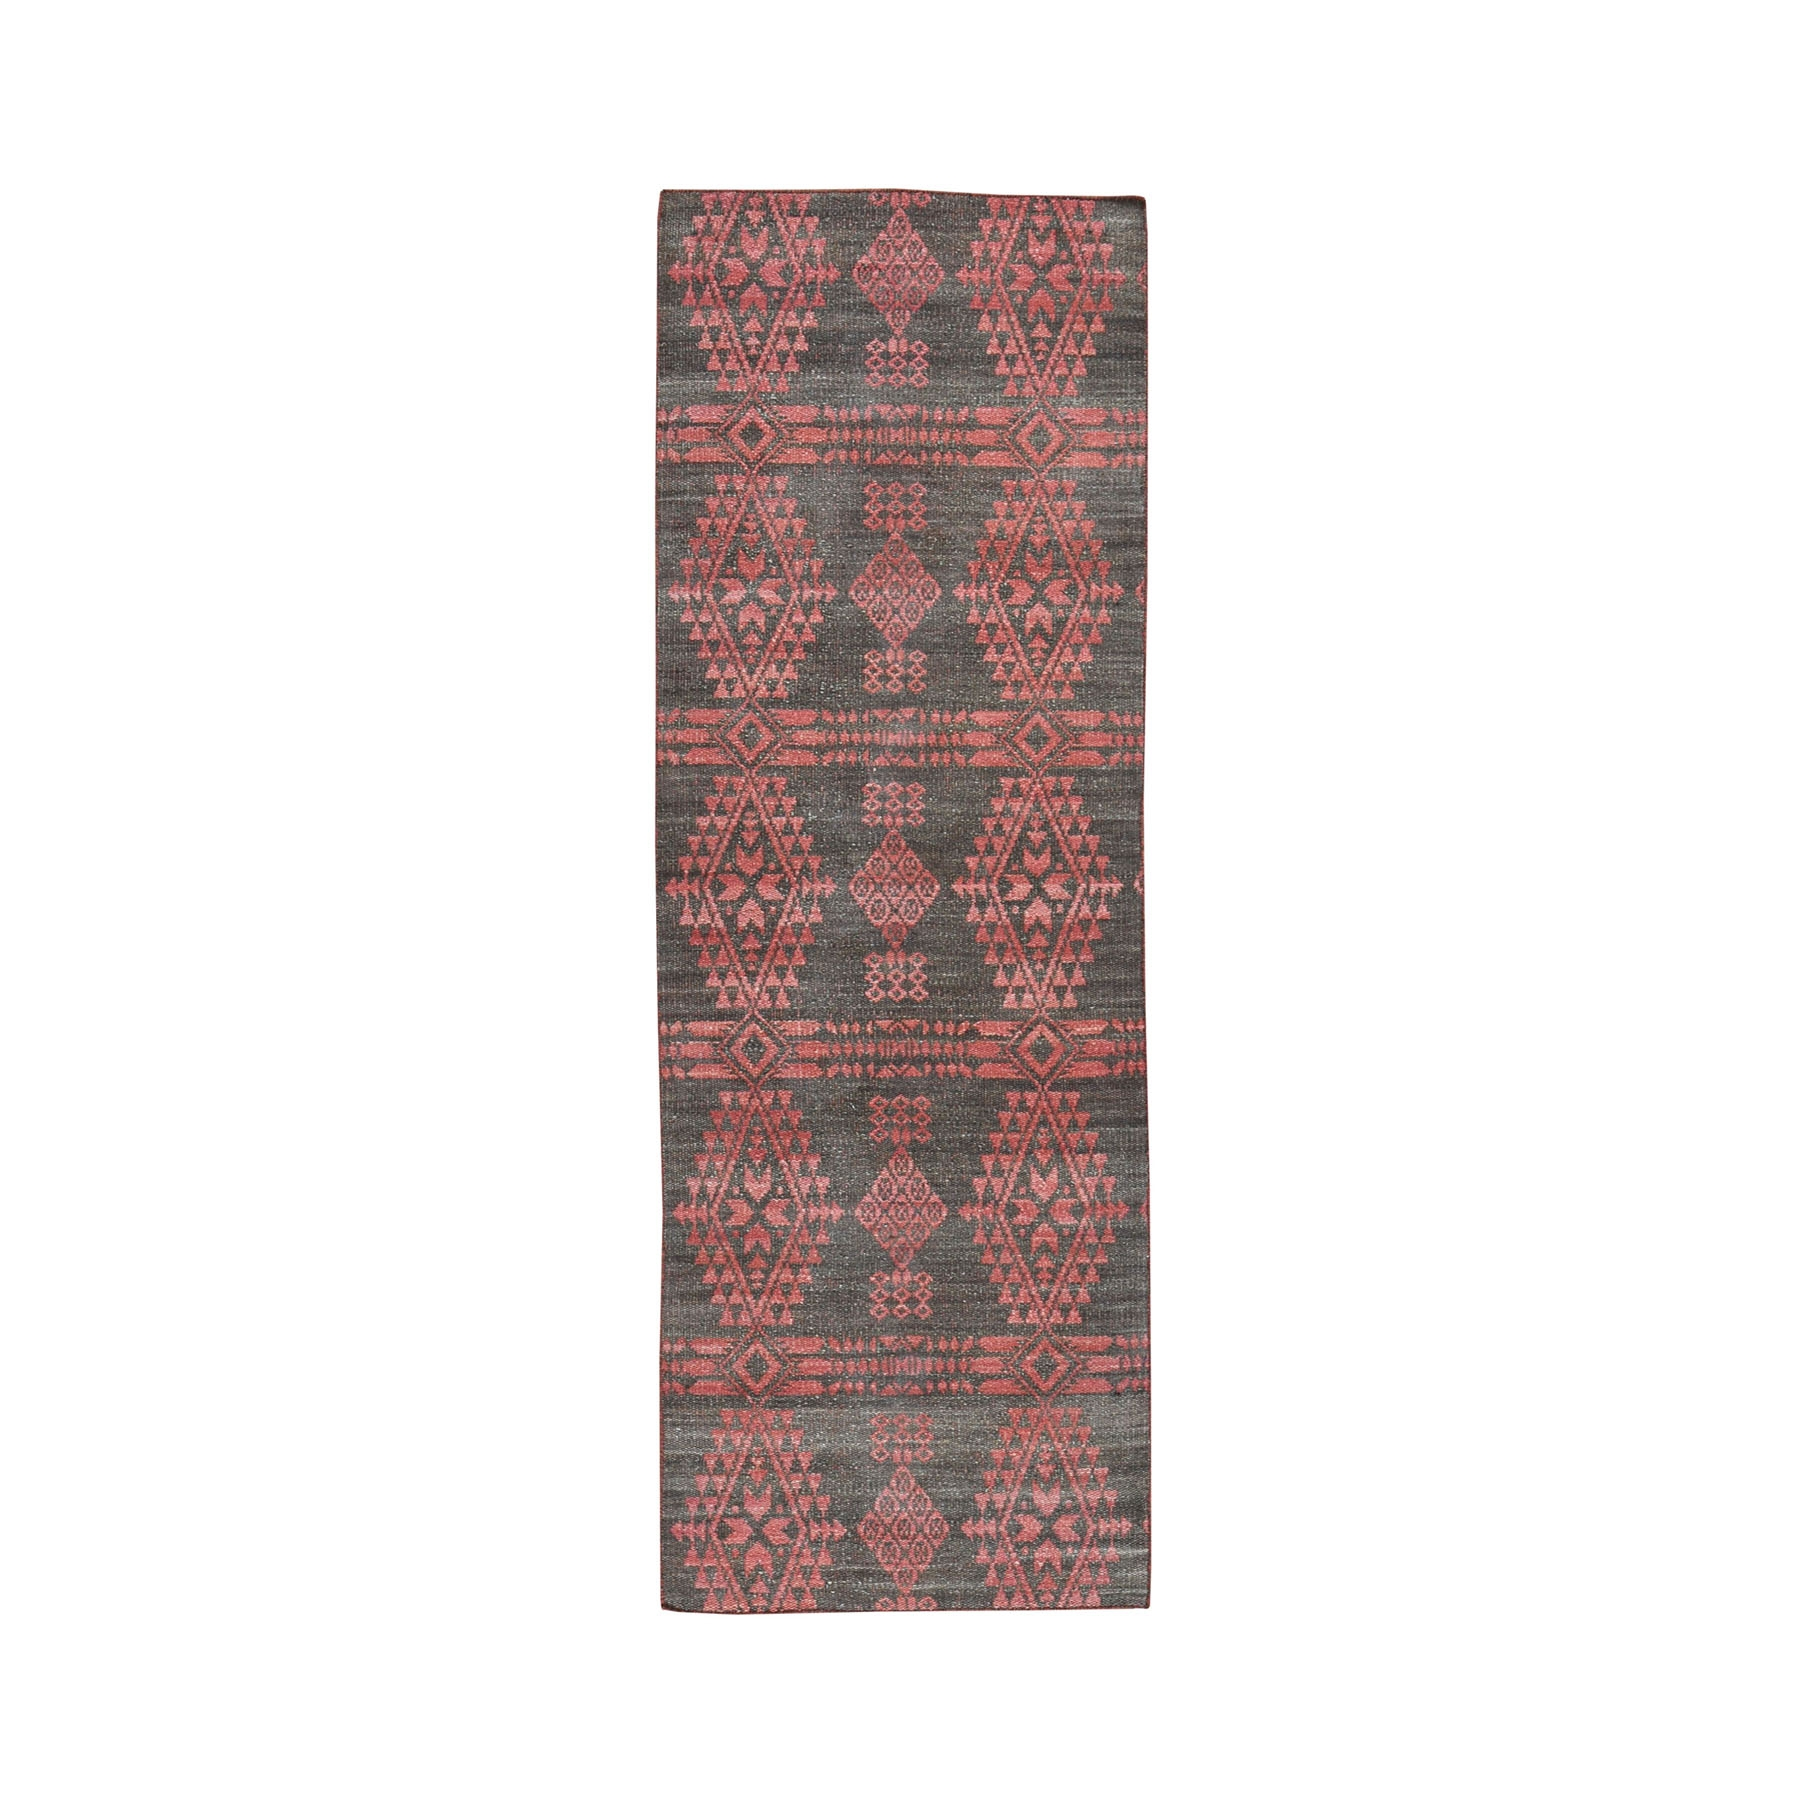 Fine Kilim Collection Hand Woven Red Rug No: 0194922